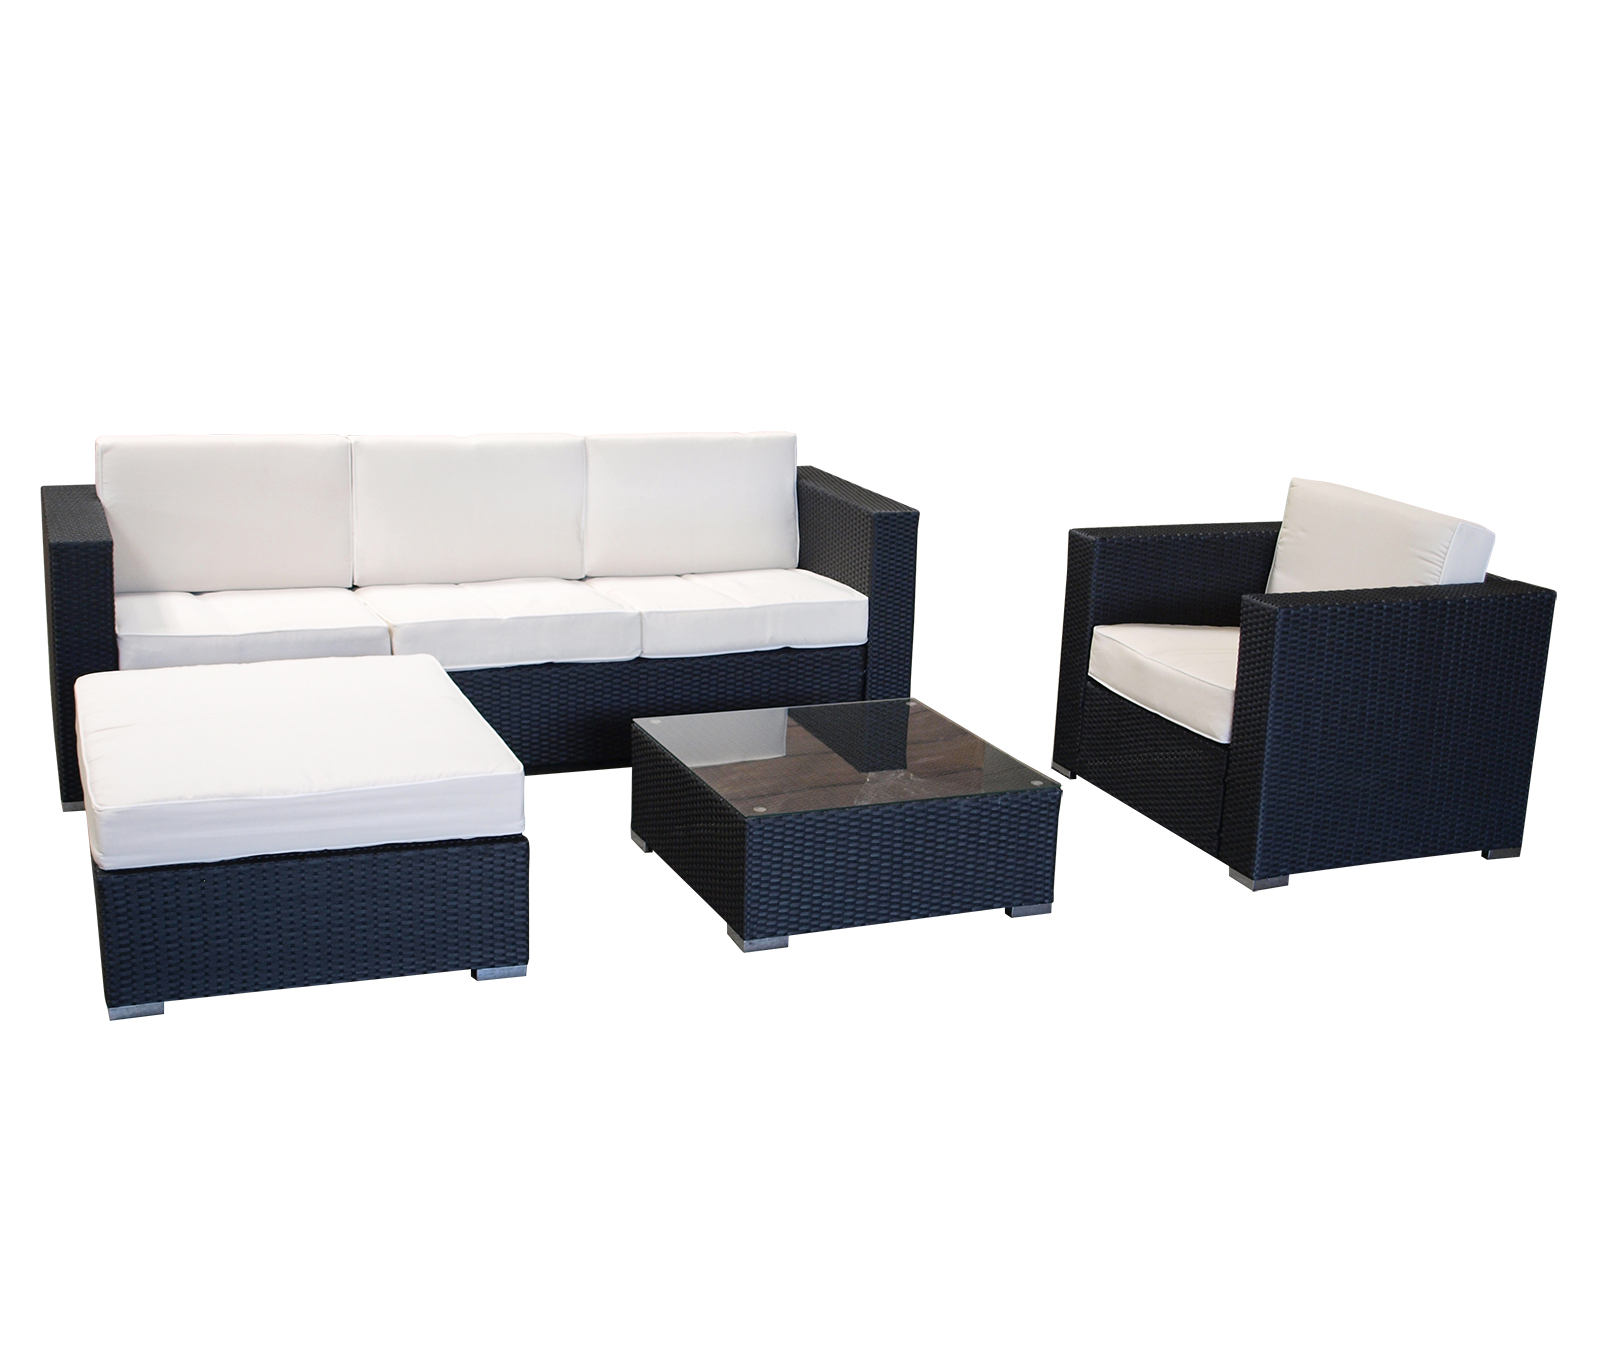 lounge sitzgruppe essgruppe tischgruppe polyrattan gartenm bel set mit polstern ebay. Black Bedroom Furniture Sets. Home Design Ideas